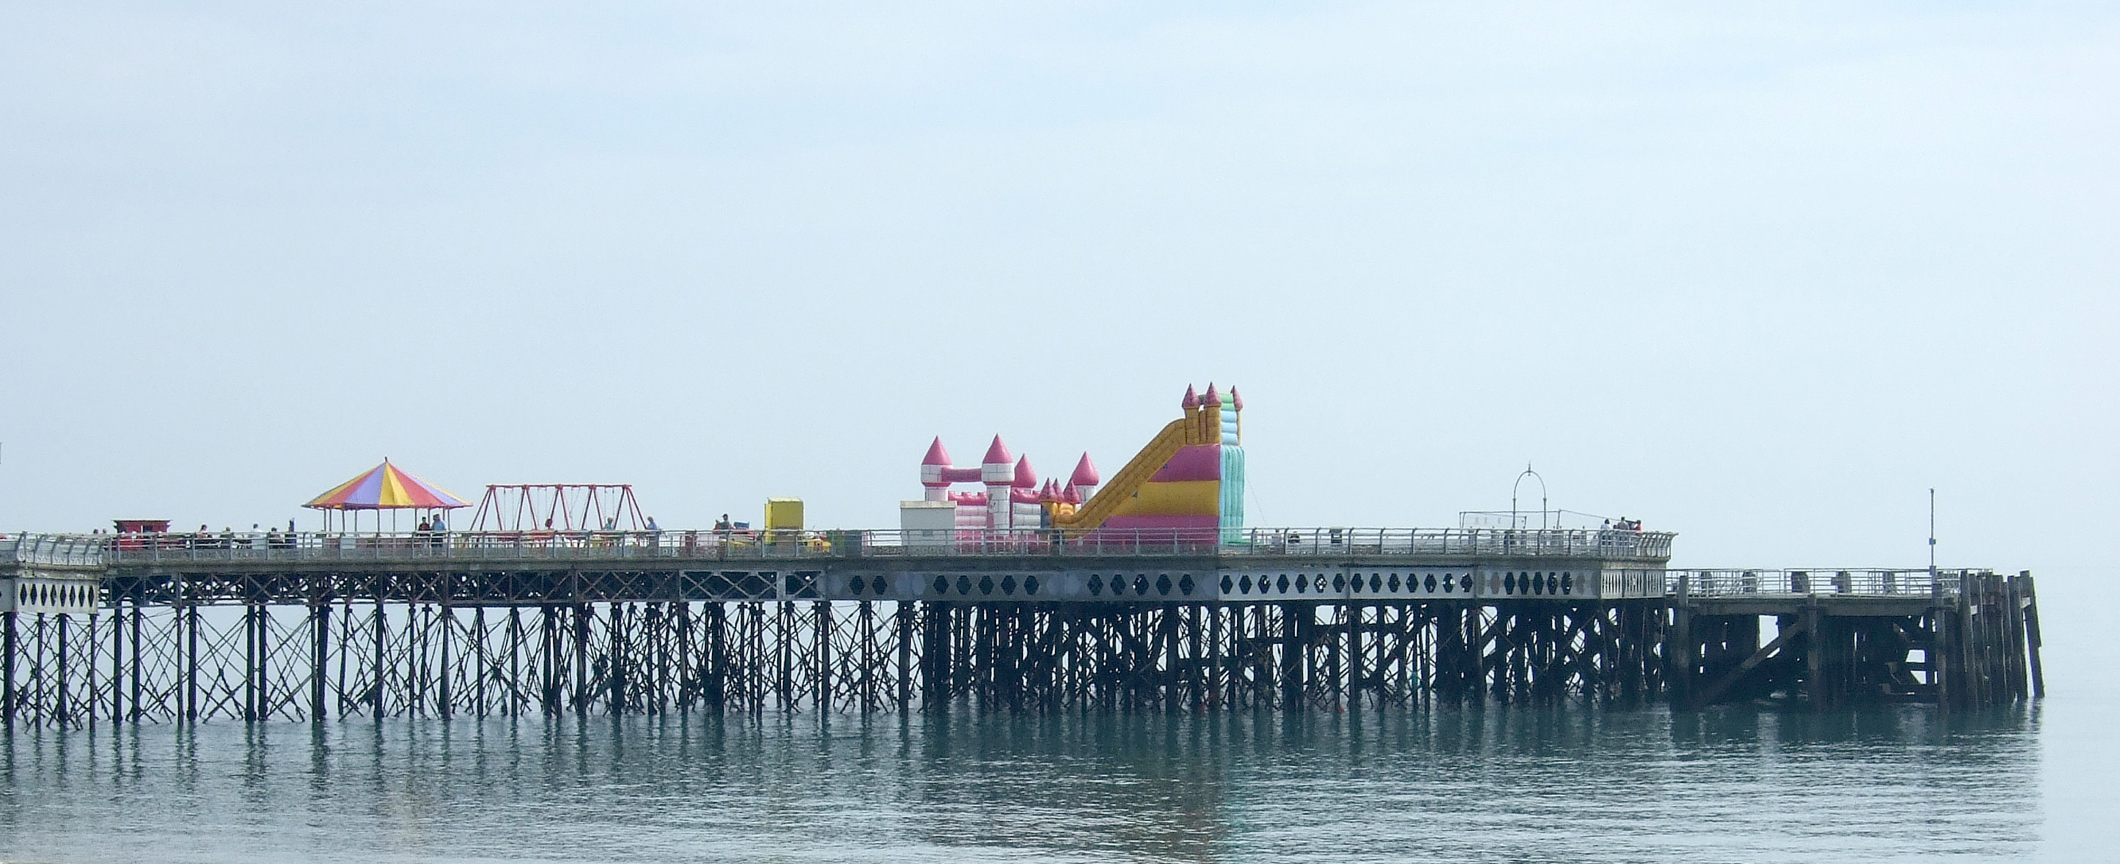 inflatables on South Parade Pier Southsea, Hampshire UK.